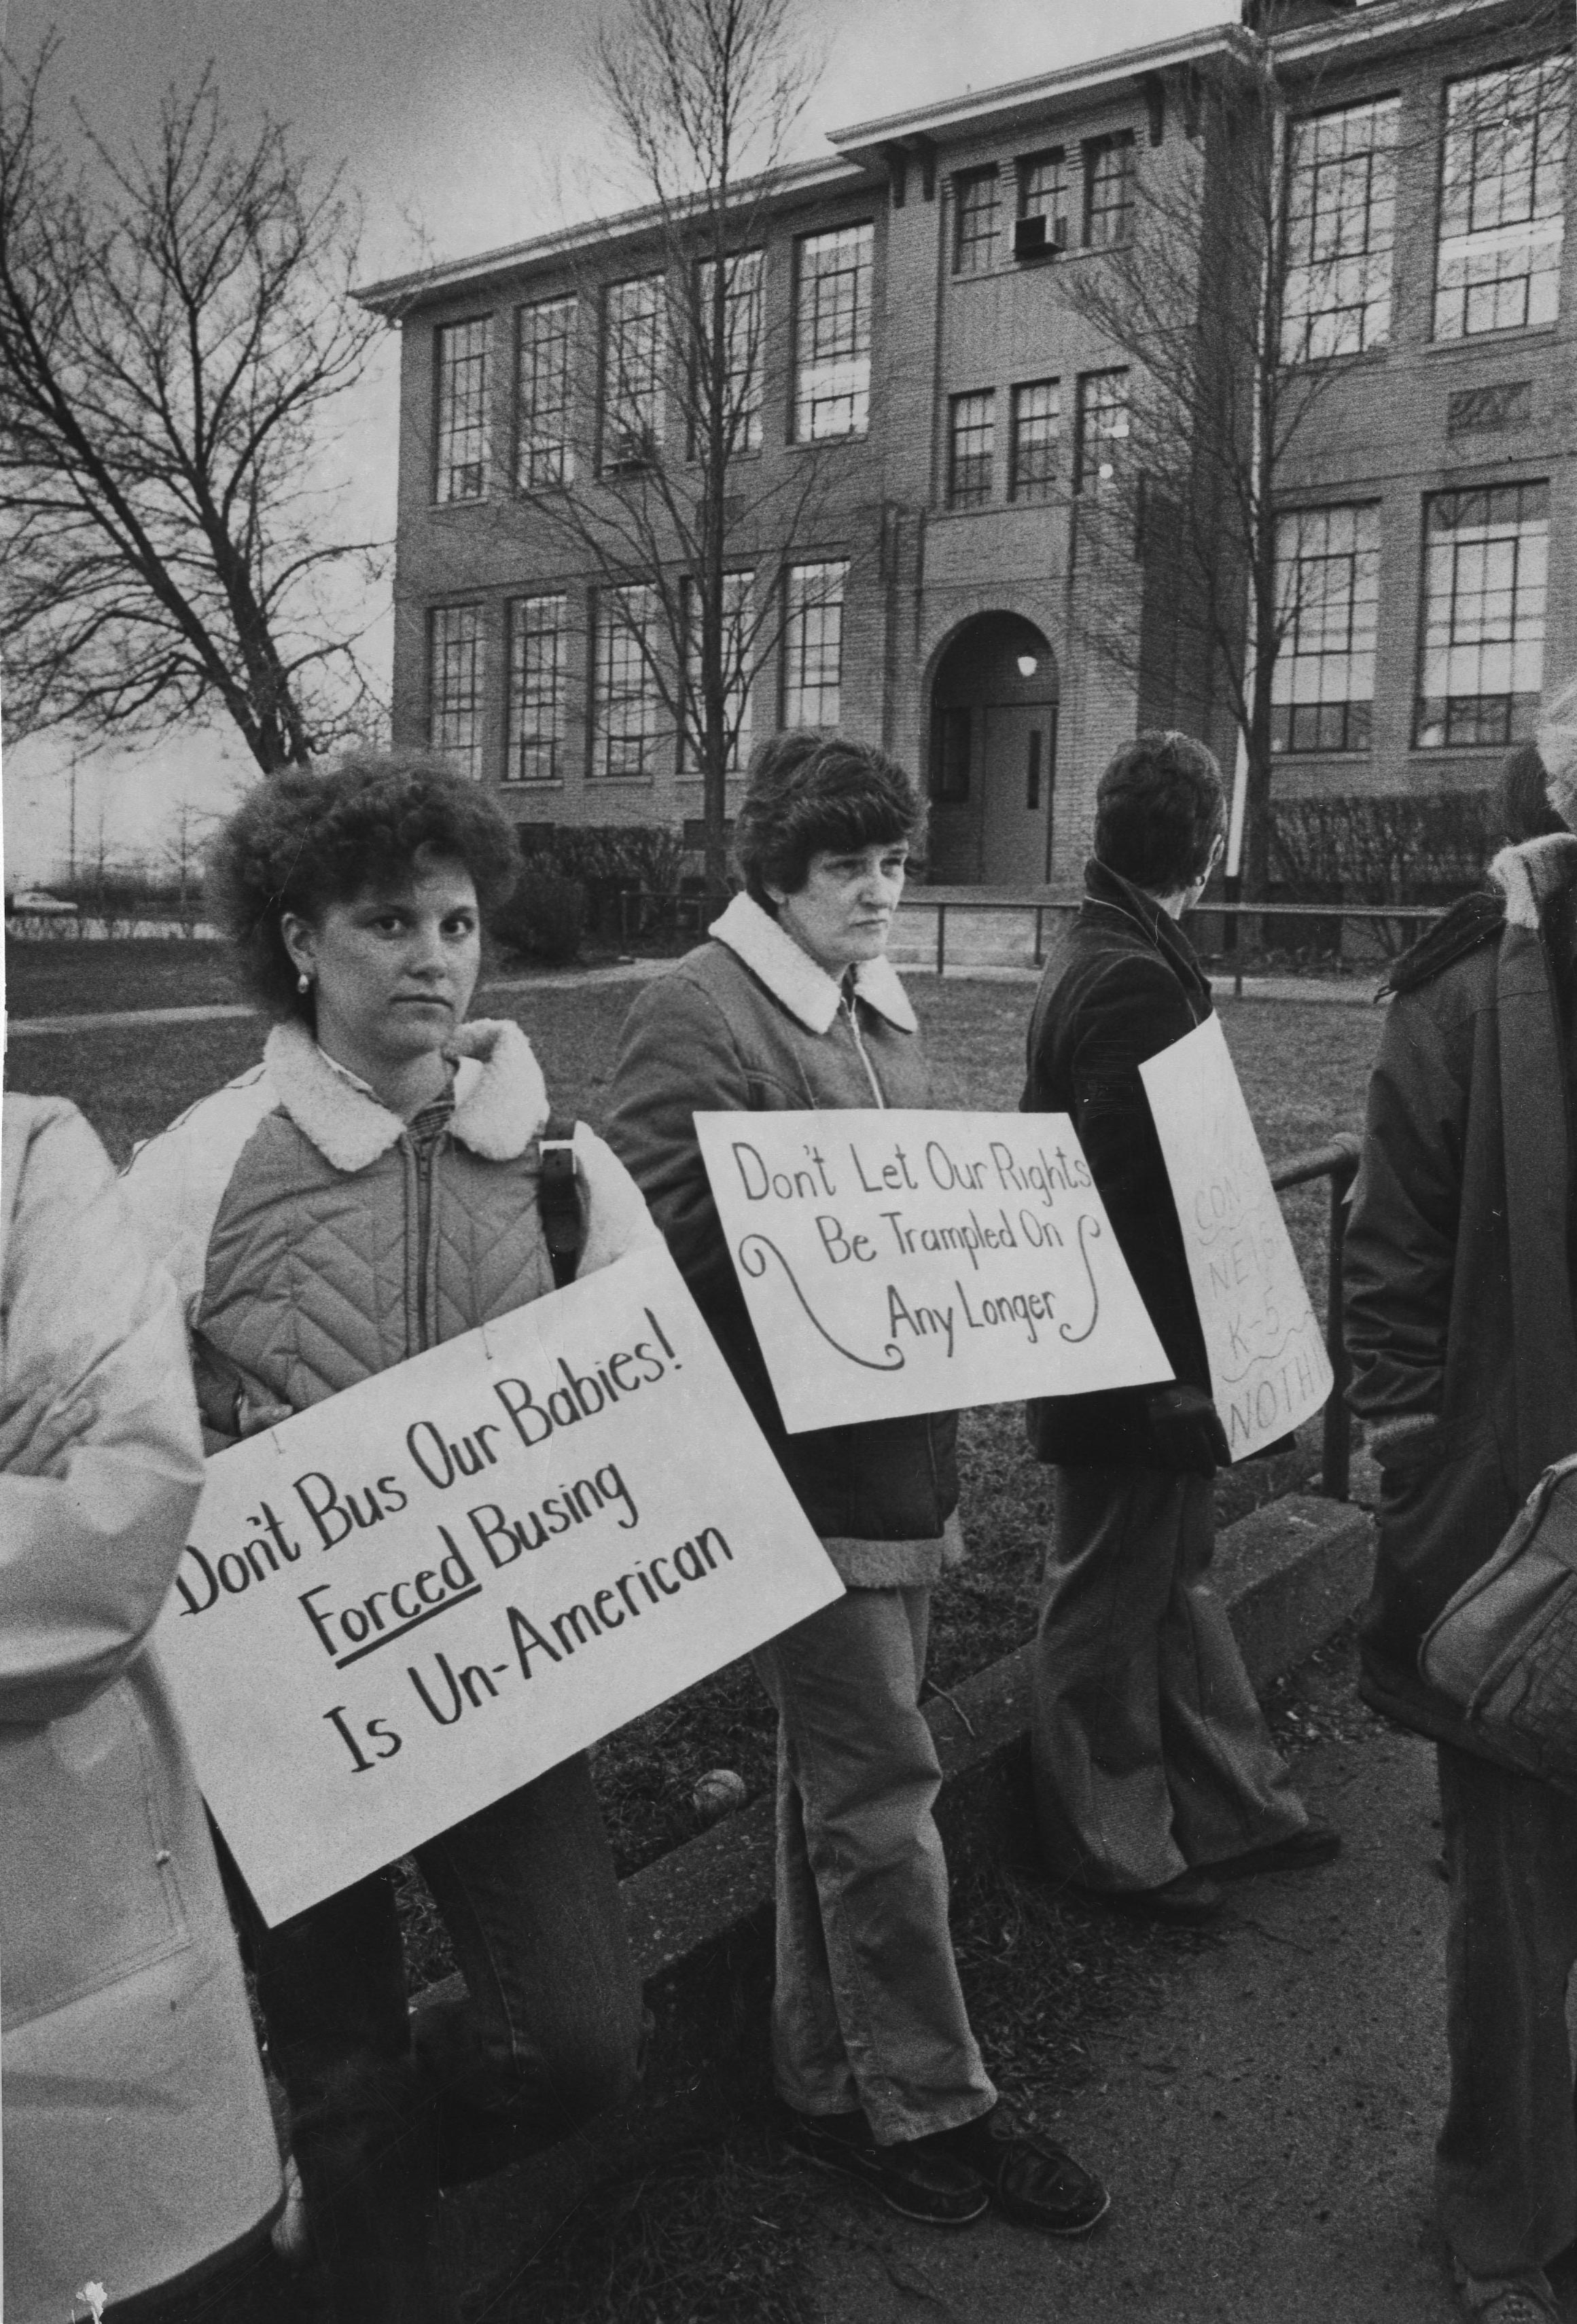 Parents protesting the new school district outside of Franklin House, the Woodland Hills district administration office, in 1982. In 2016, bussing students to schools when one is close enough to walk remains an issue. (Photo by Darrell Sapp. Reprinted with permissions from the Pittsburgh Post-Gazette.)